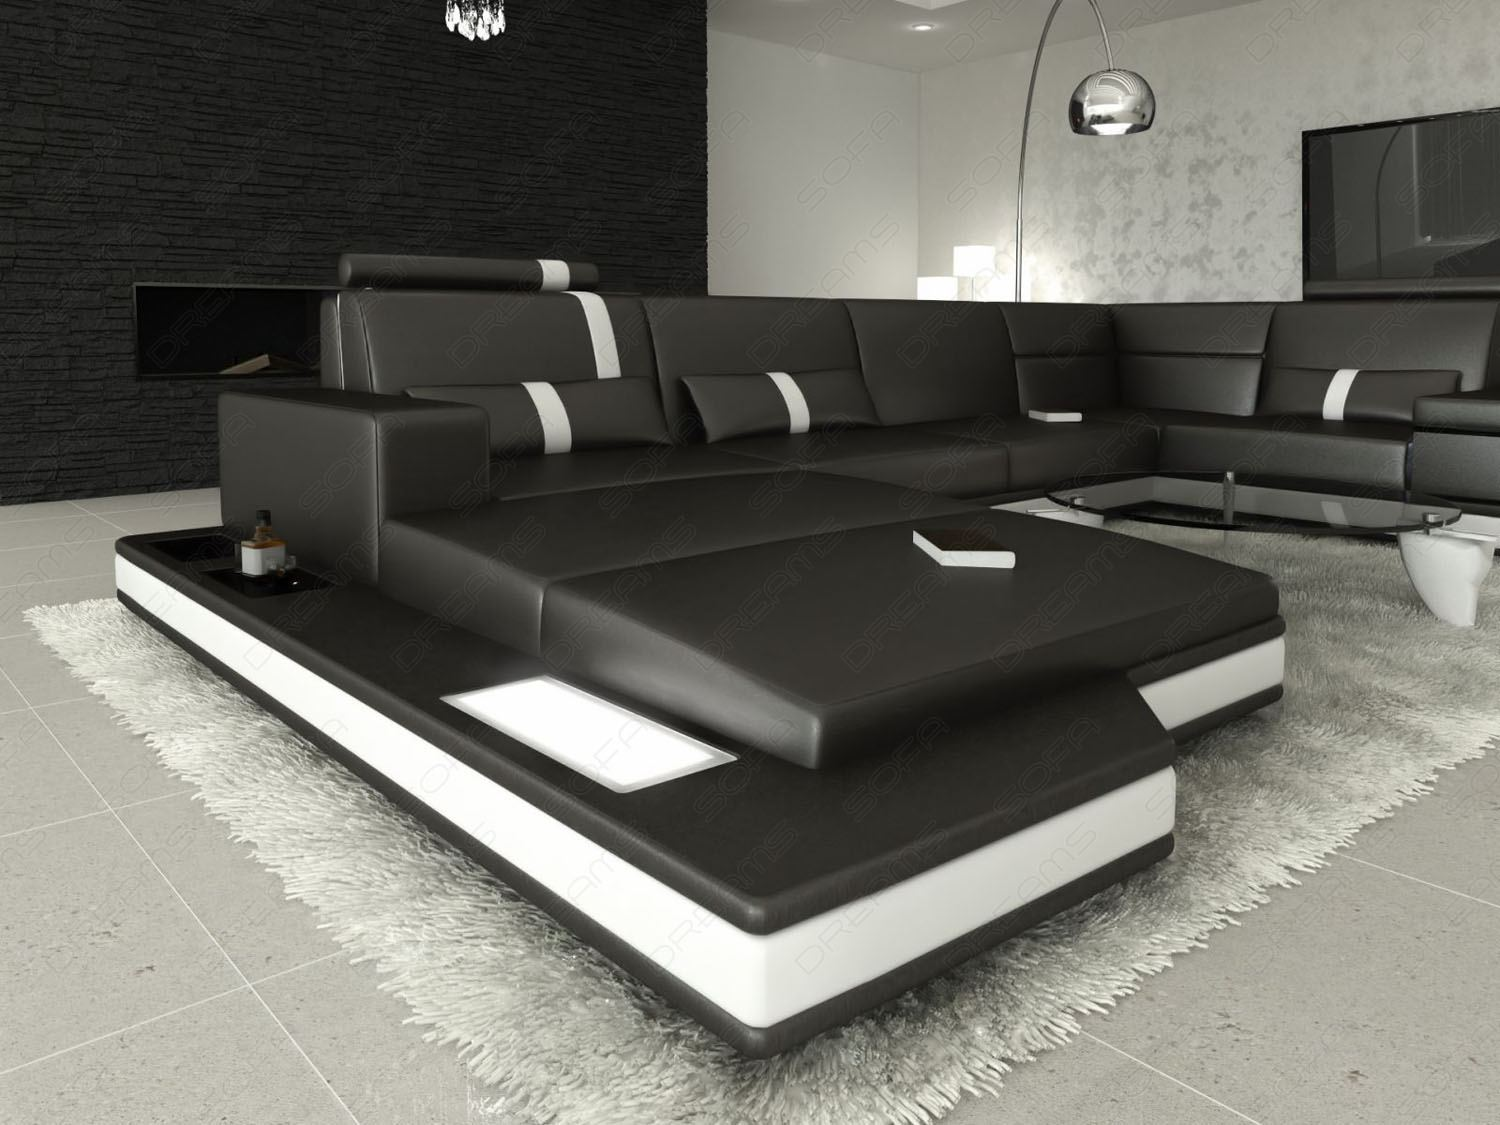 Wohnlandschaft design  Corner Sofa Suite Leather Sofa designer-sofa Couch Messana LED ...